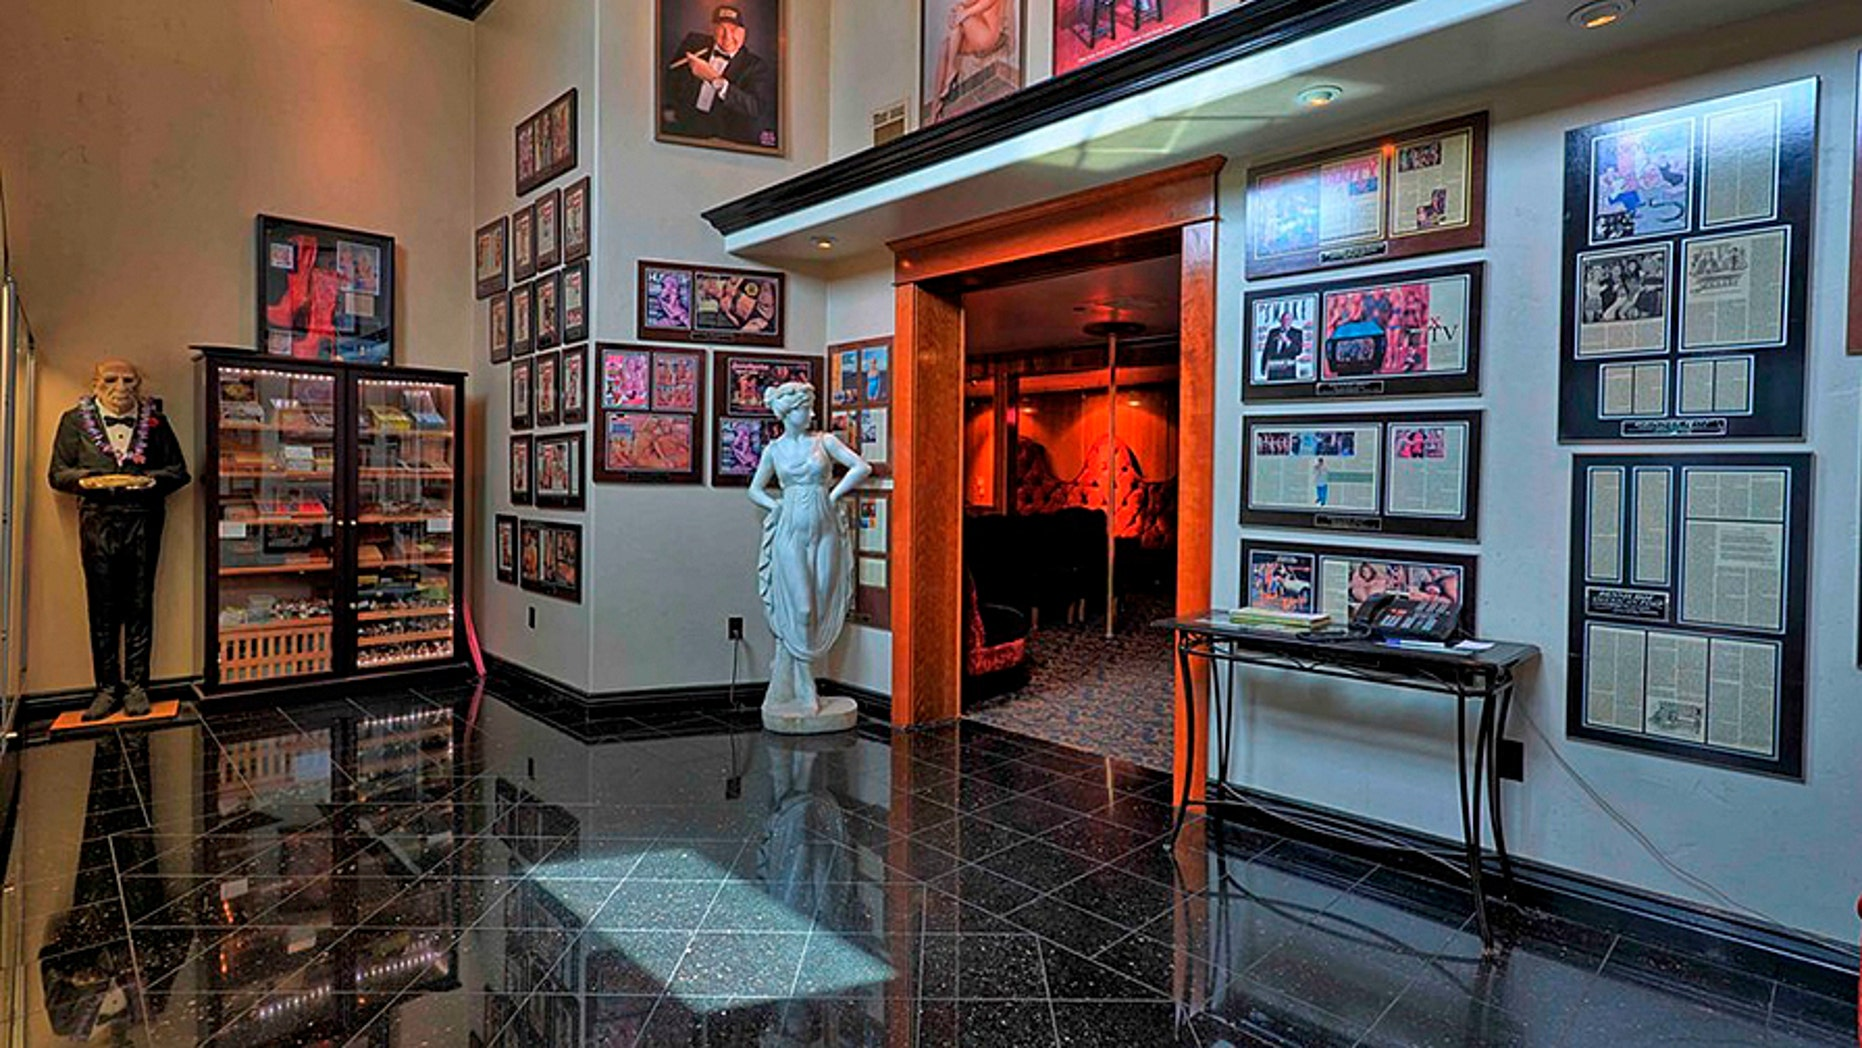 (The lobby of the famous Nevada brothel Bunny Ranch. Credit: Yelp)